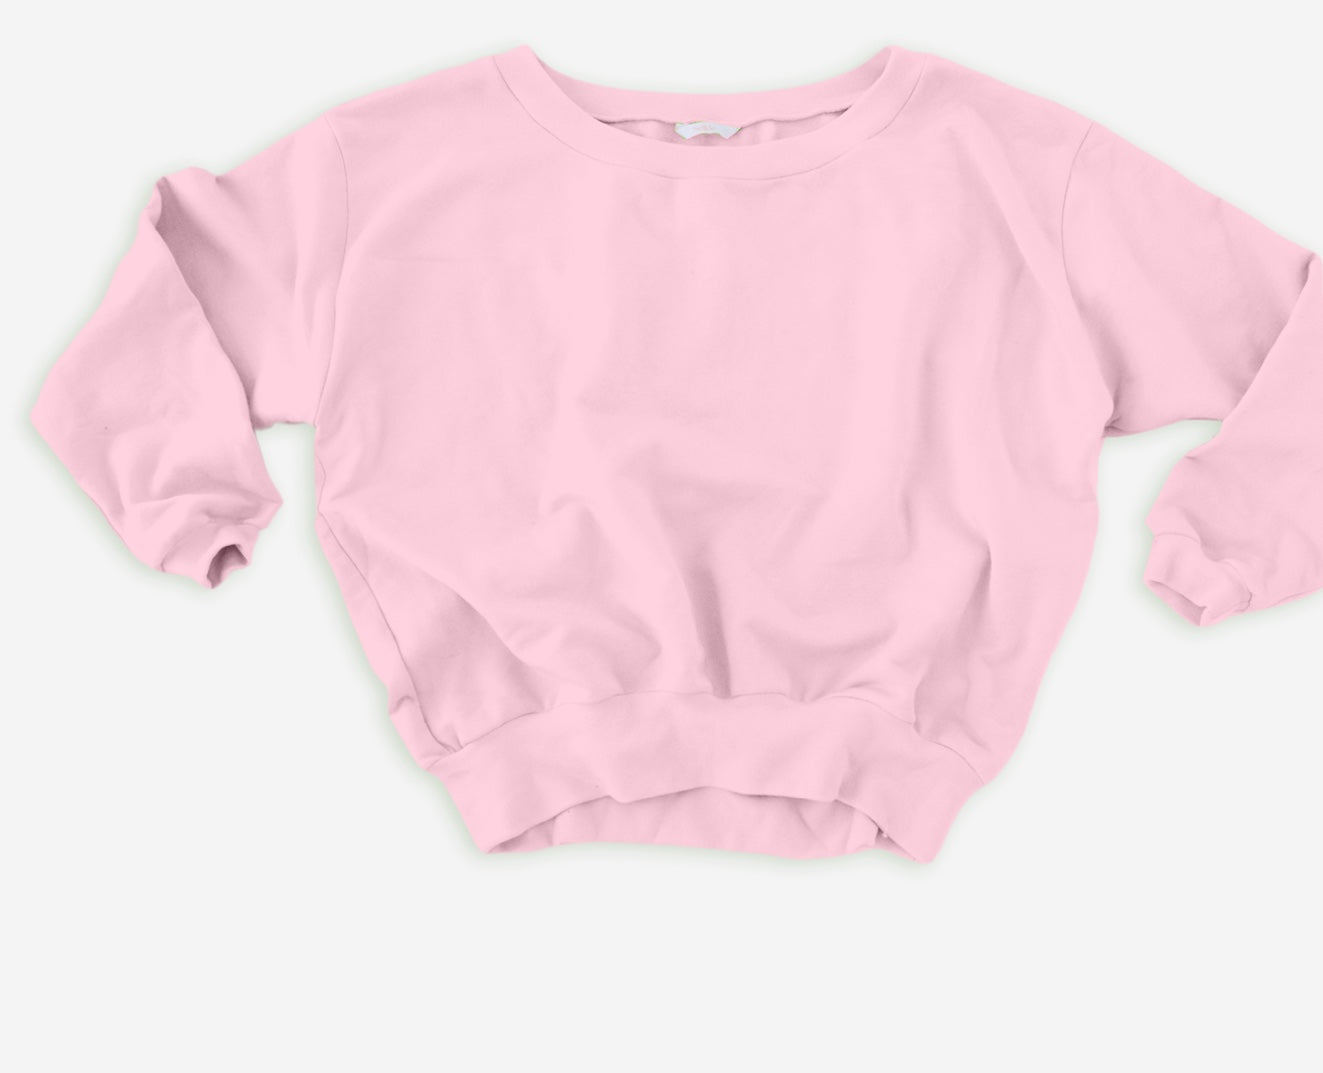 Selkie Backseat Baby Sweatshirt